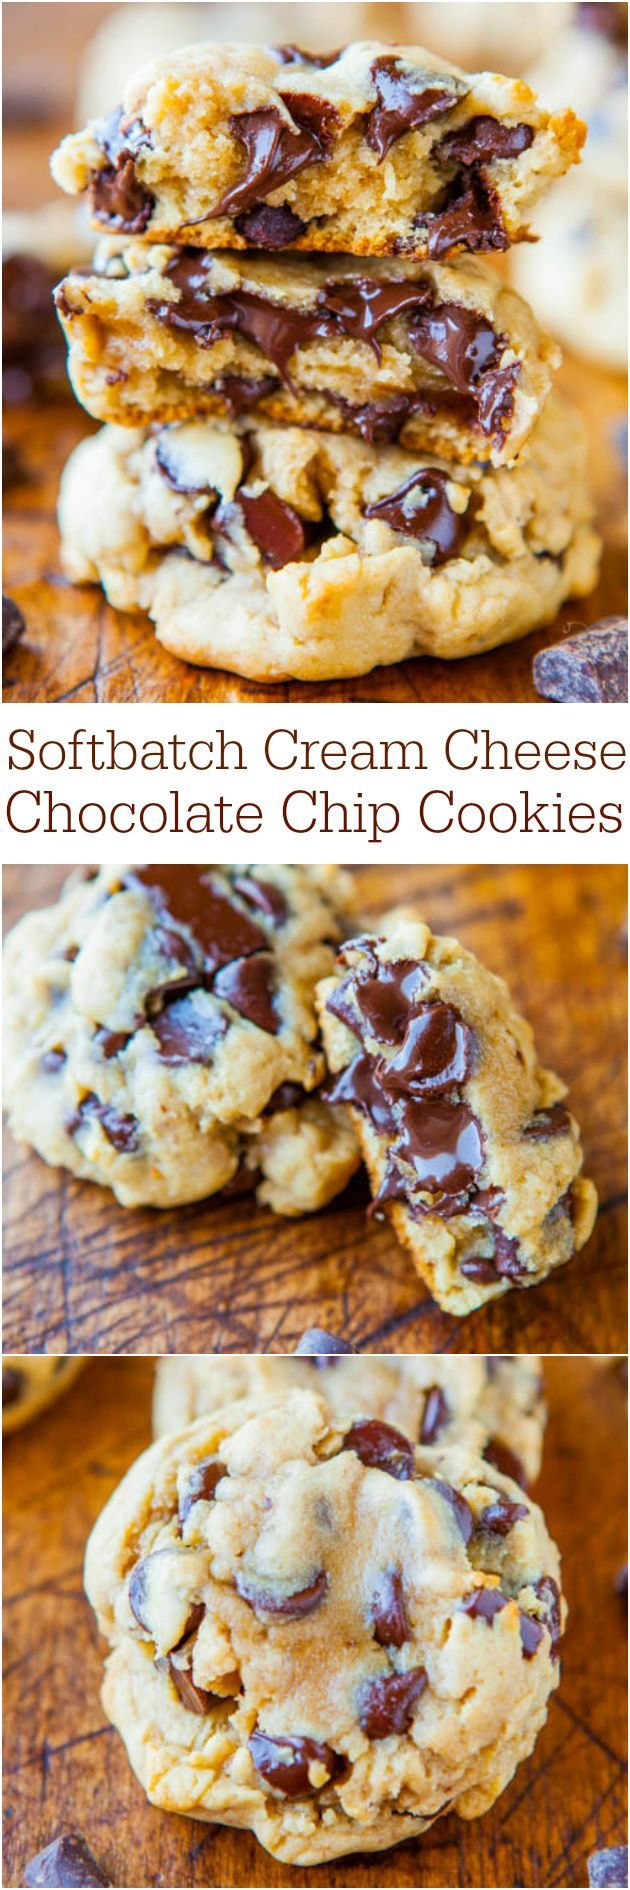 Softbatch Cream Cheese Chocolate Chip Cookies - Move over butter, cream cheese makes these cookies thick and super soft! @Averie Sunshine {Averie Cooks}